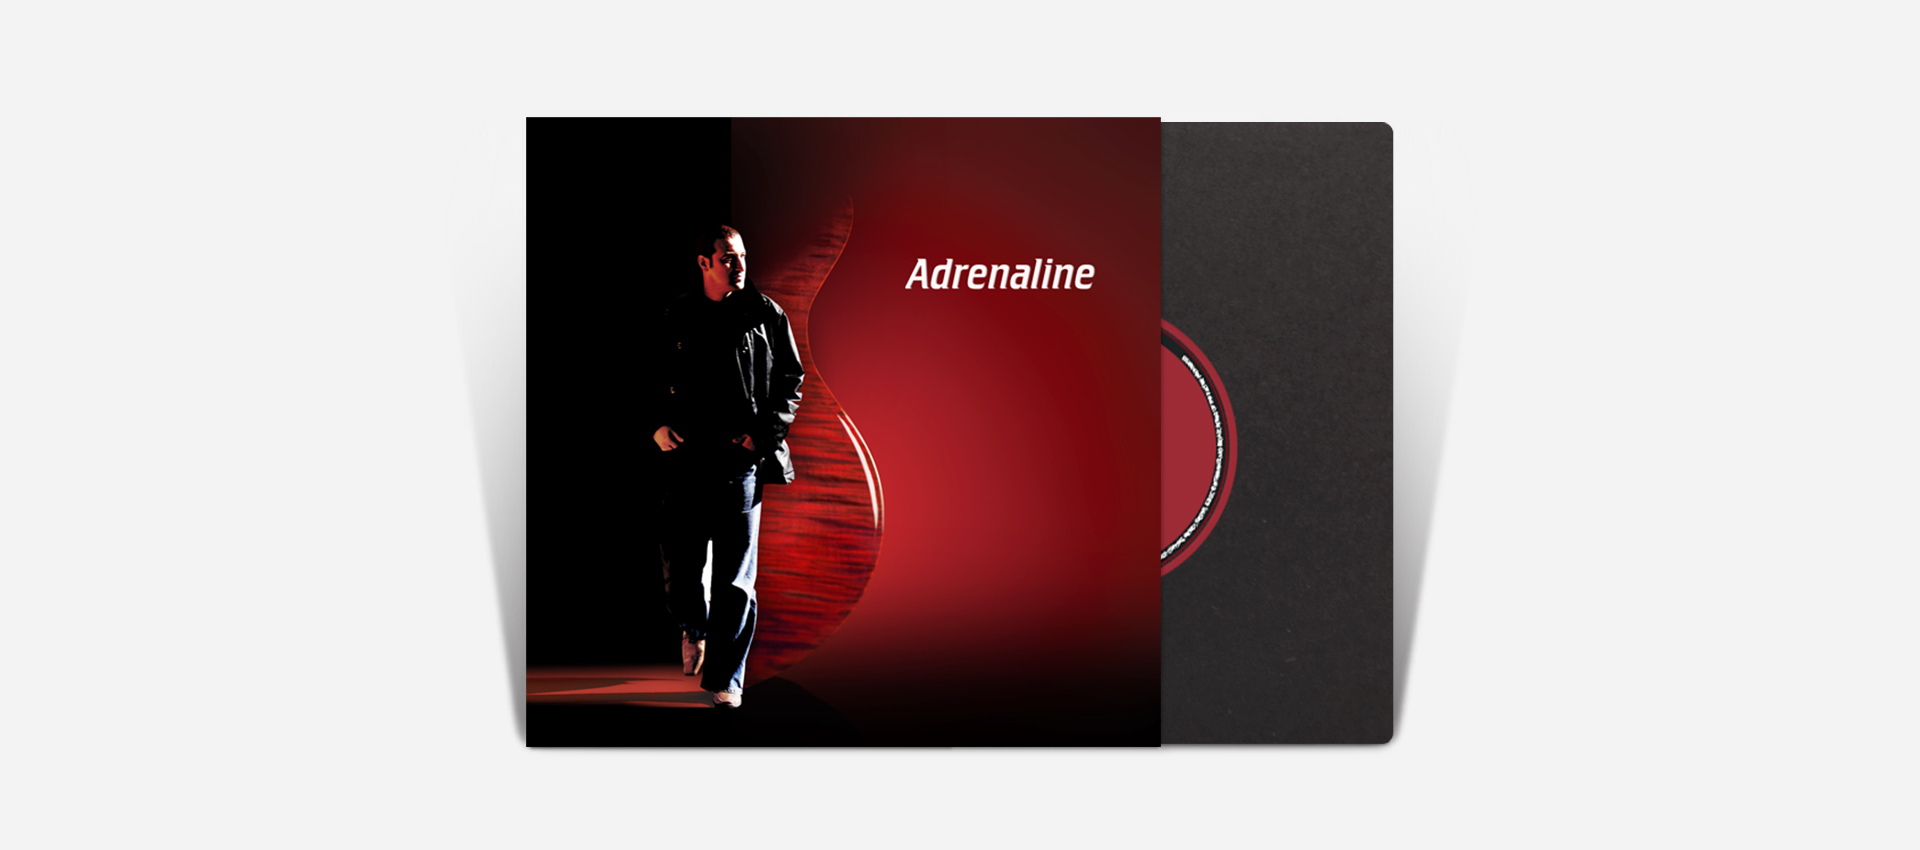 Adrenaline, album cover design